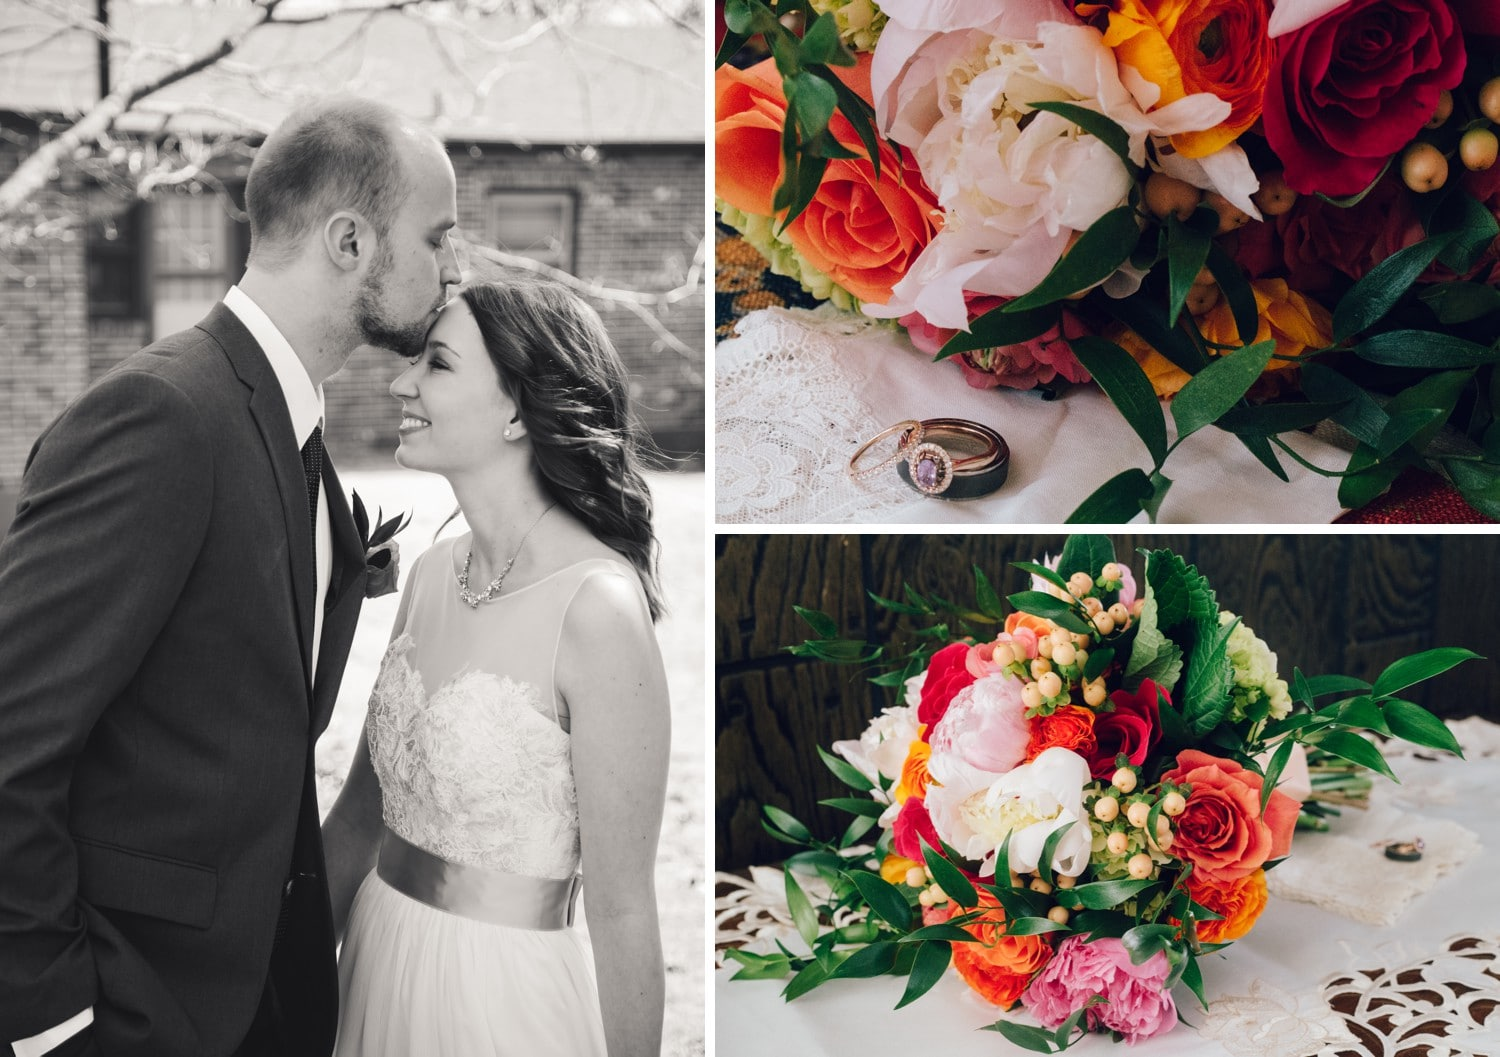 St. Louis Wedding at Home, Wedding Photography